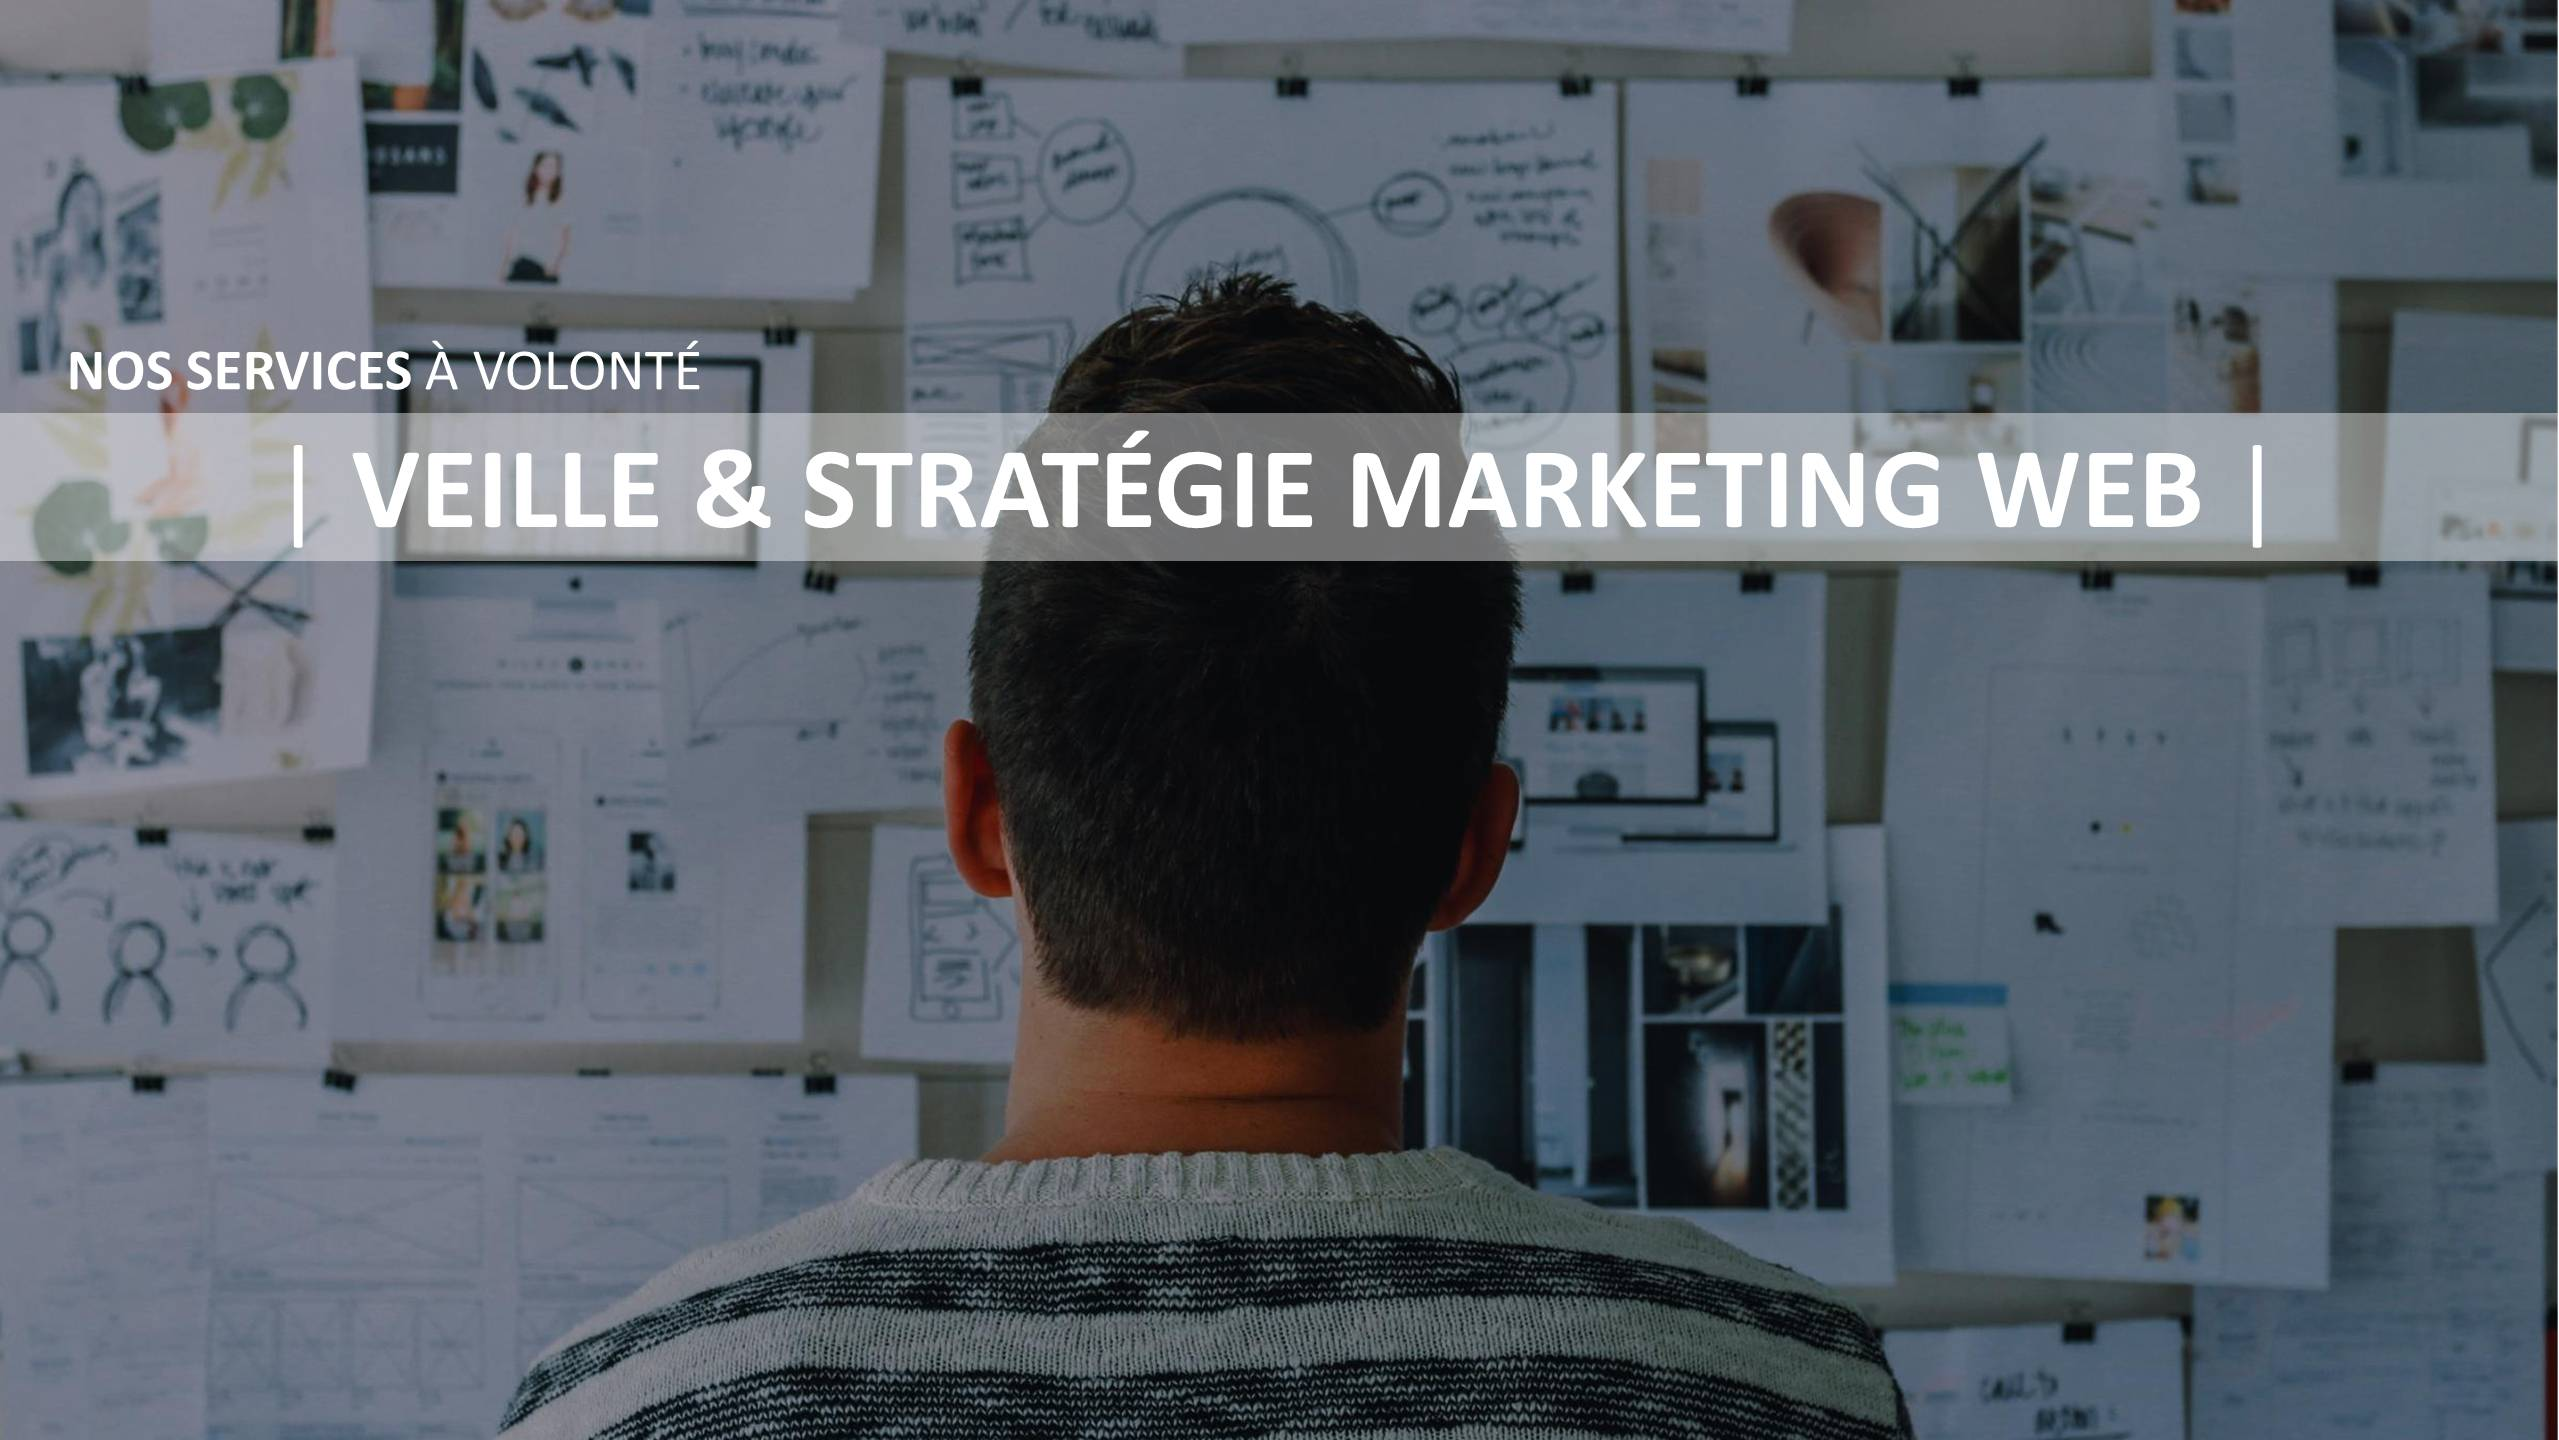 KLAS PARIS - VEILLE & STRATÉGIE MARKETING WEB